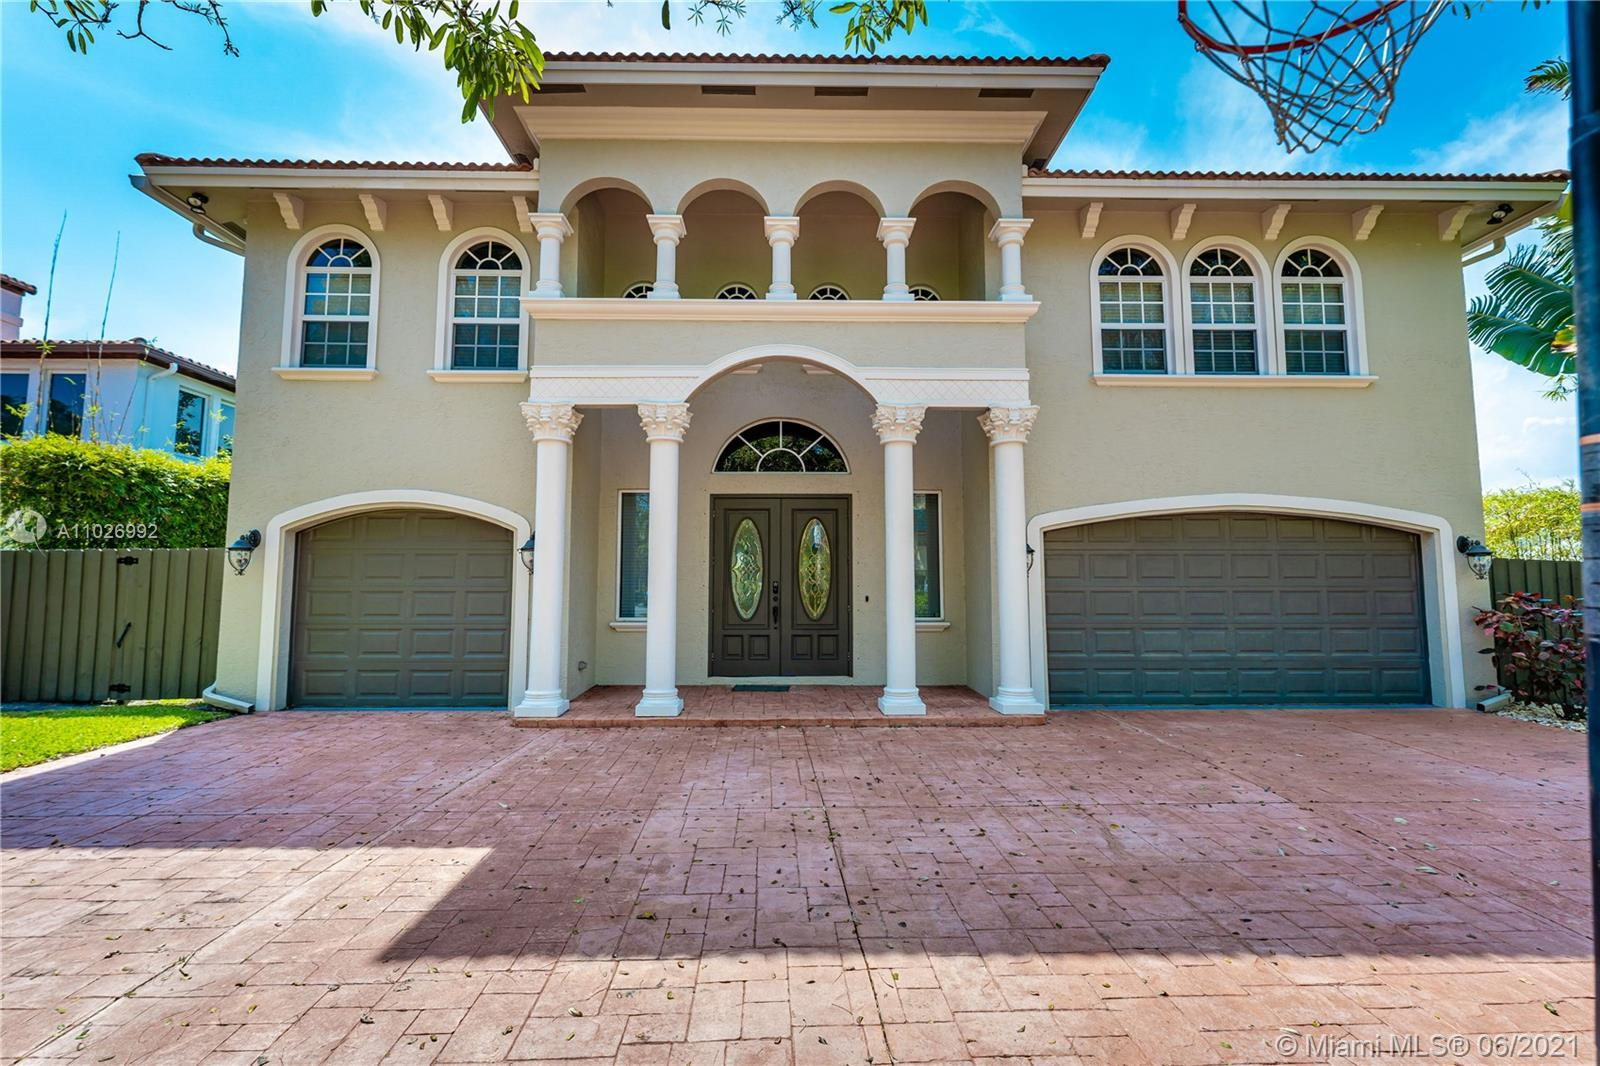 HOT SUMMER SALE. Amazing 2 story 2004 built home has it all…location, style, lots of space, & impact